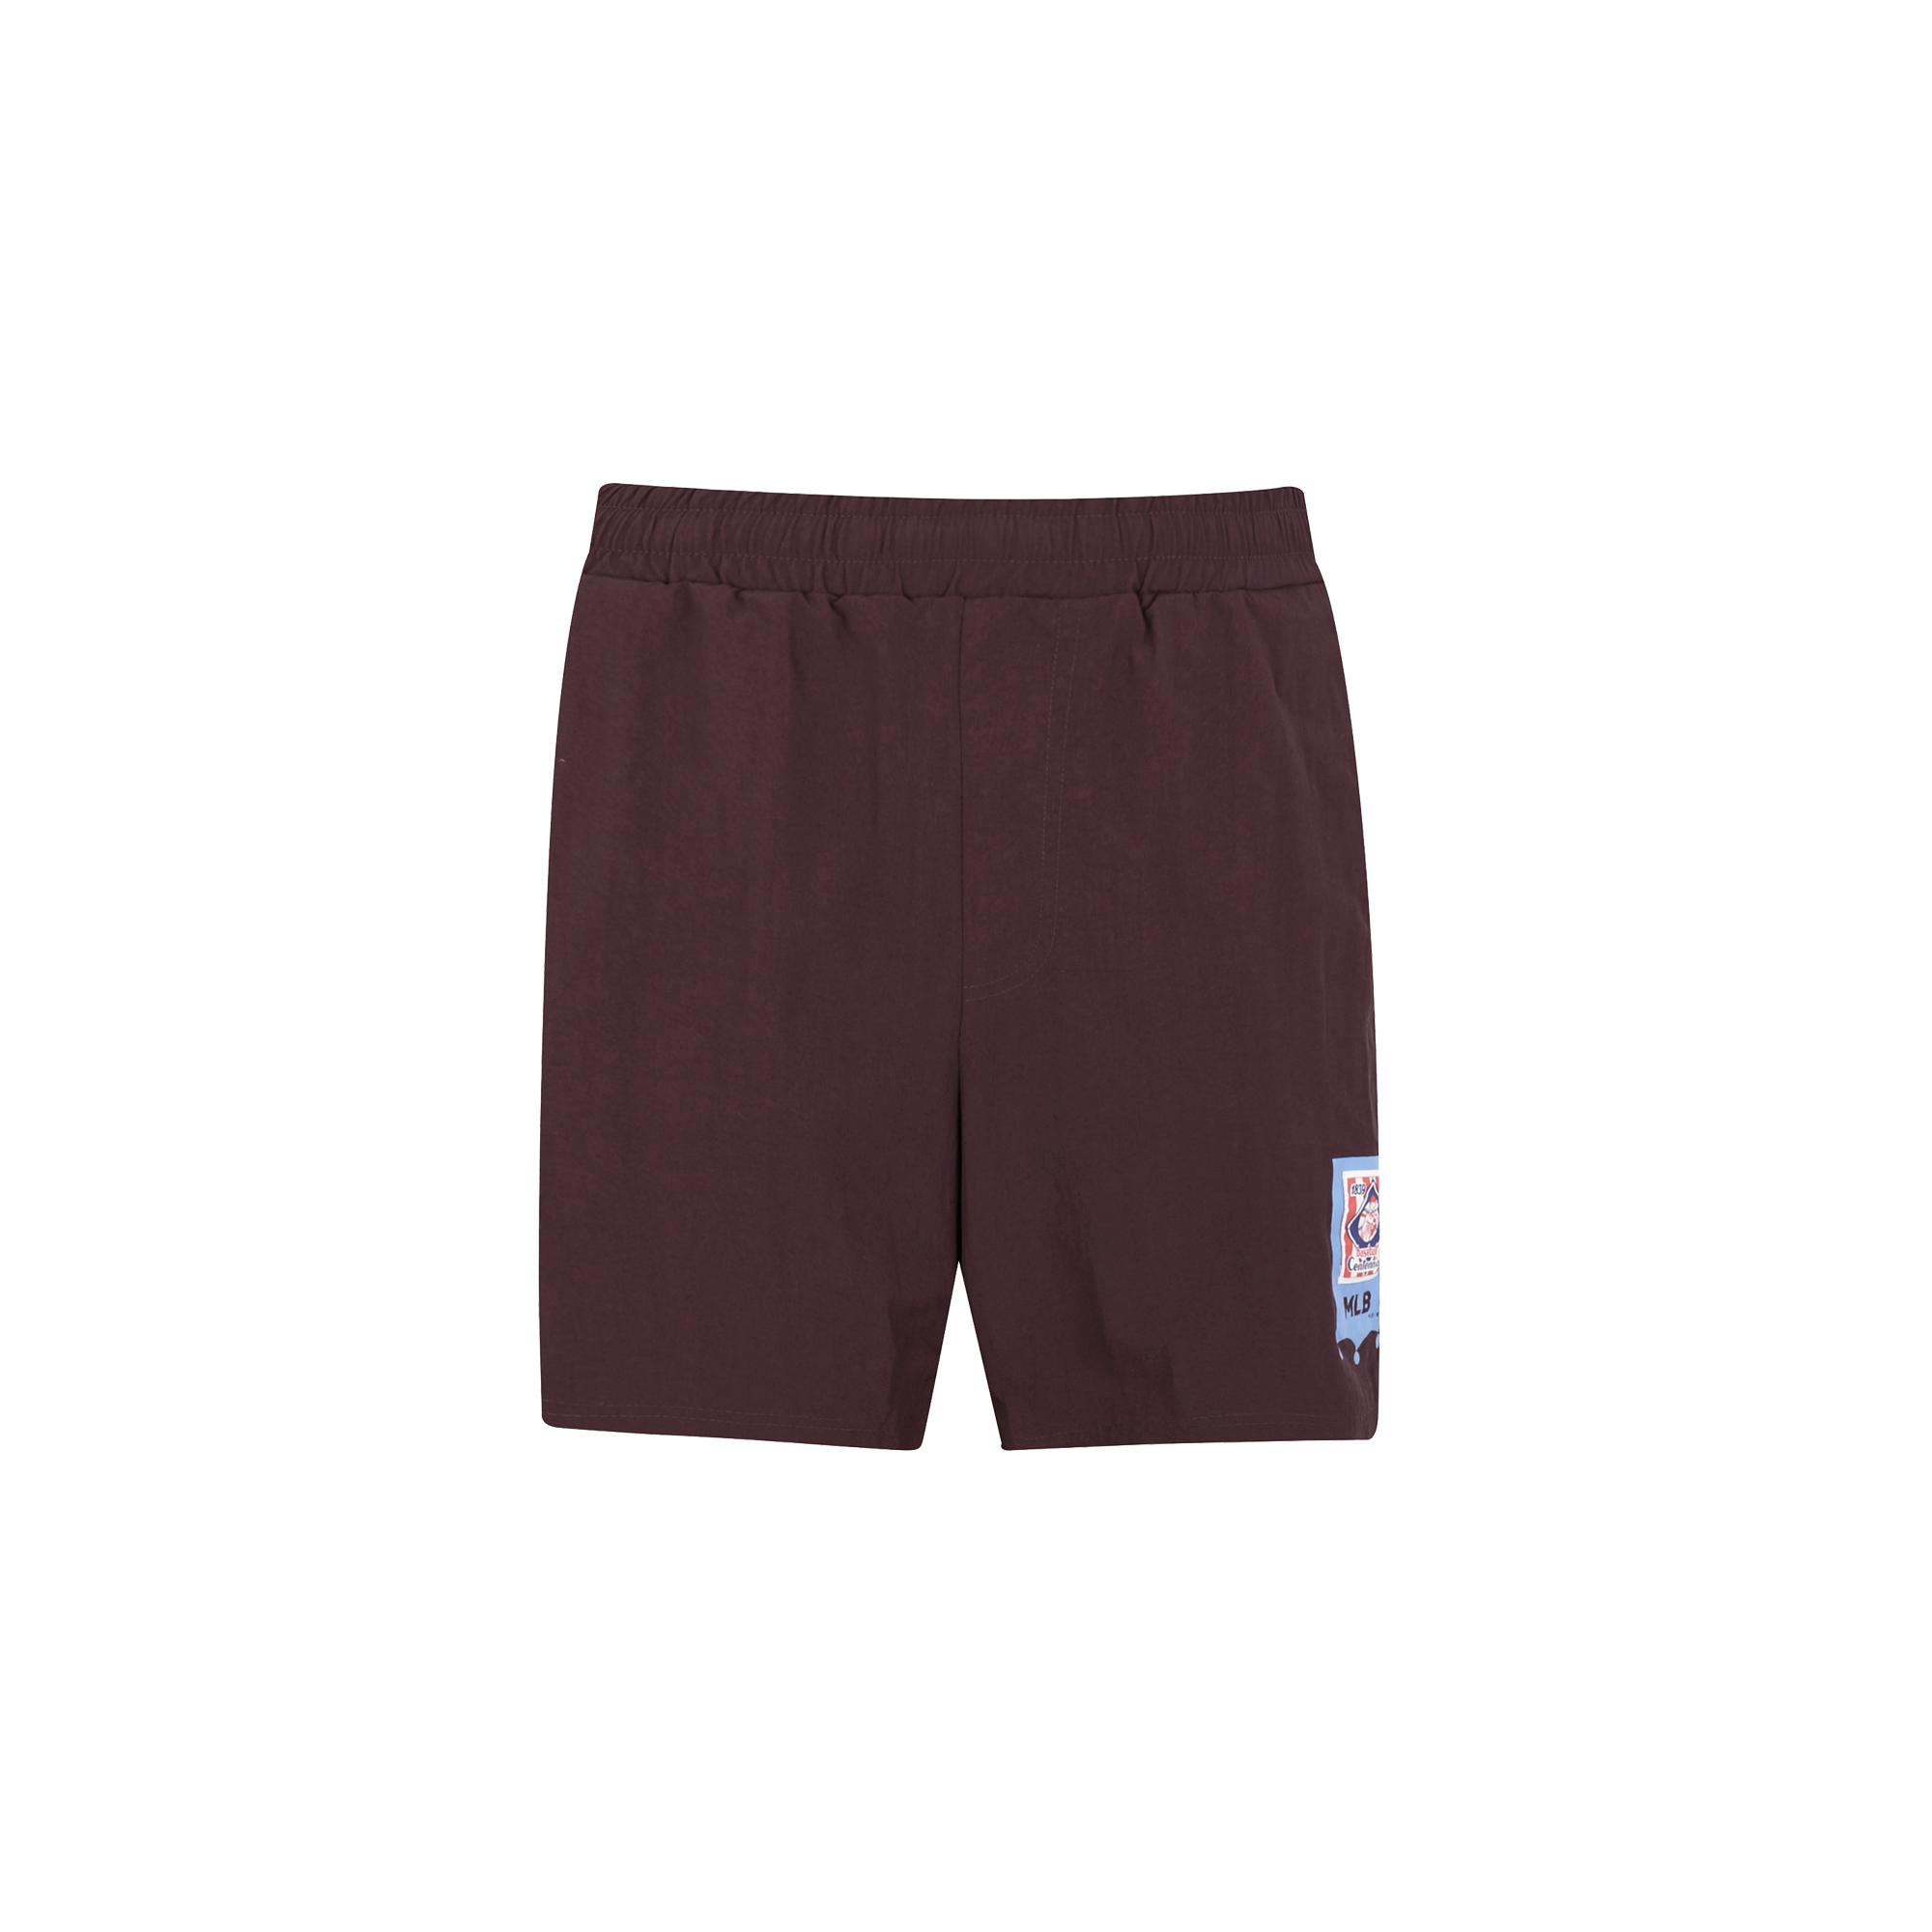 MLB COOPERS SHORTS